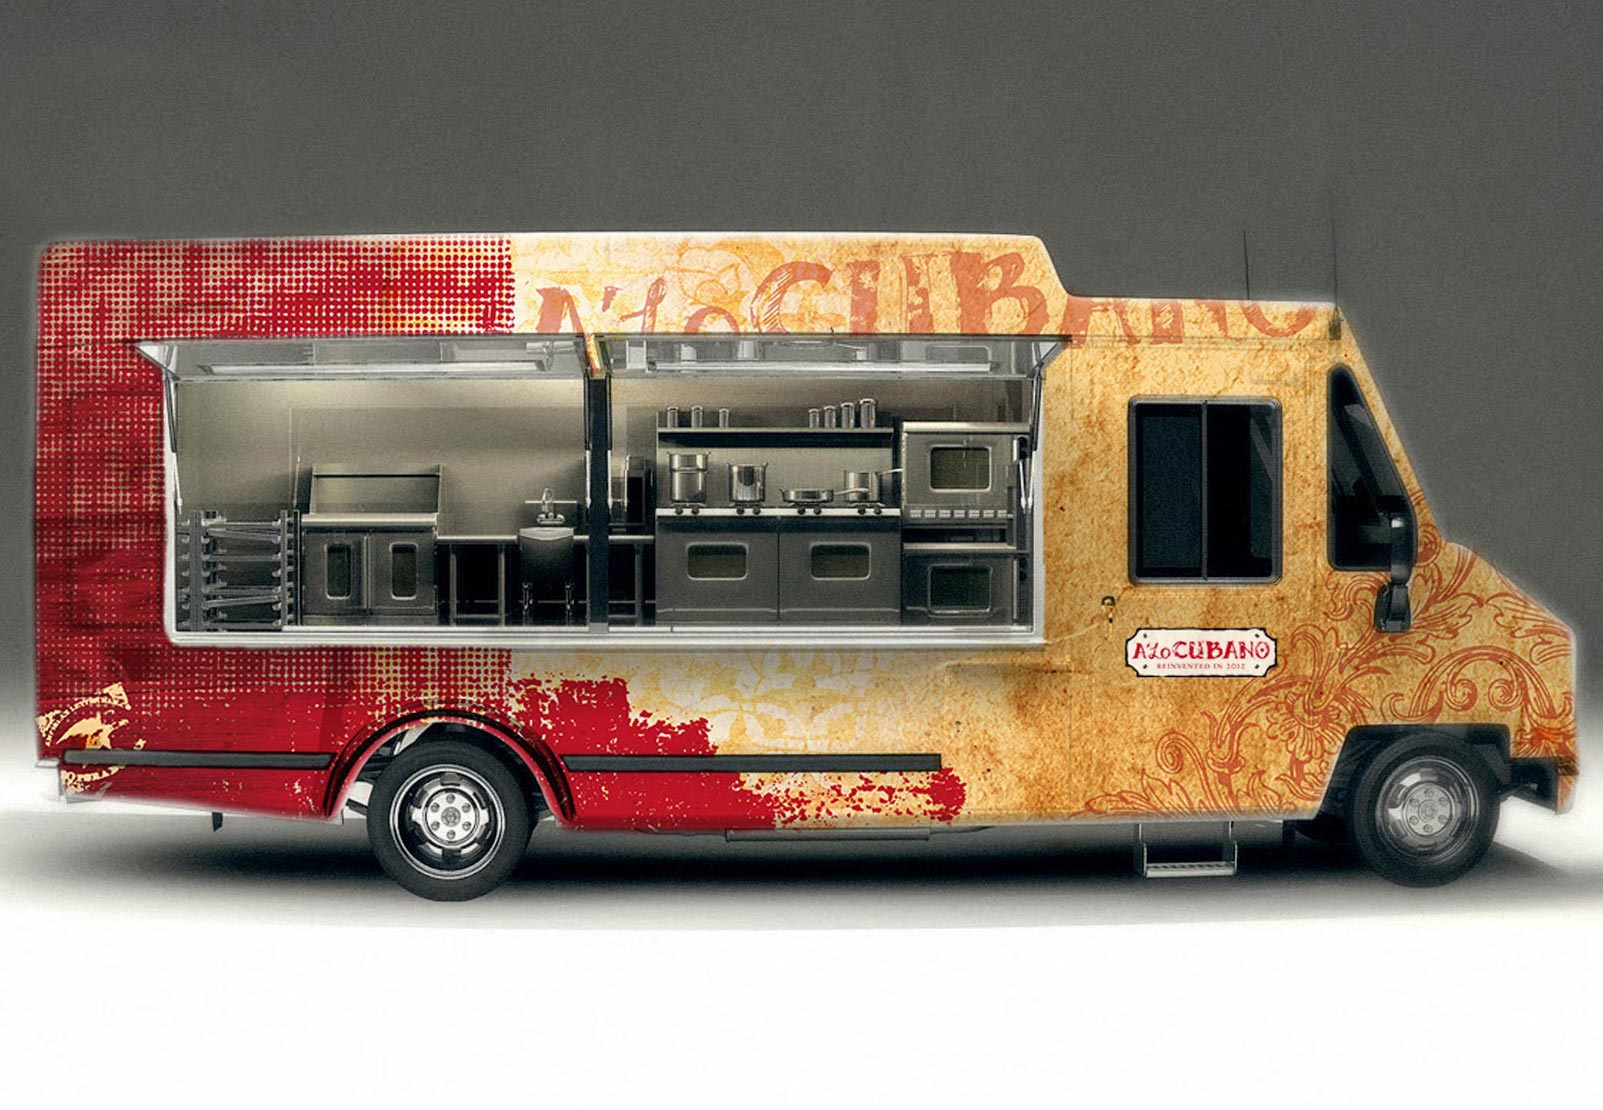 Food truck design online pictures to pin on pinterest for Design food truck online